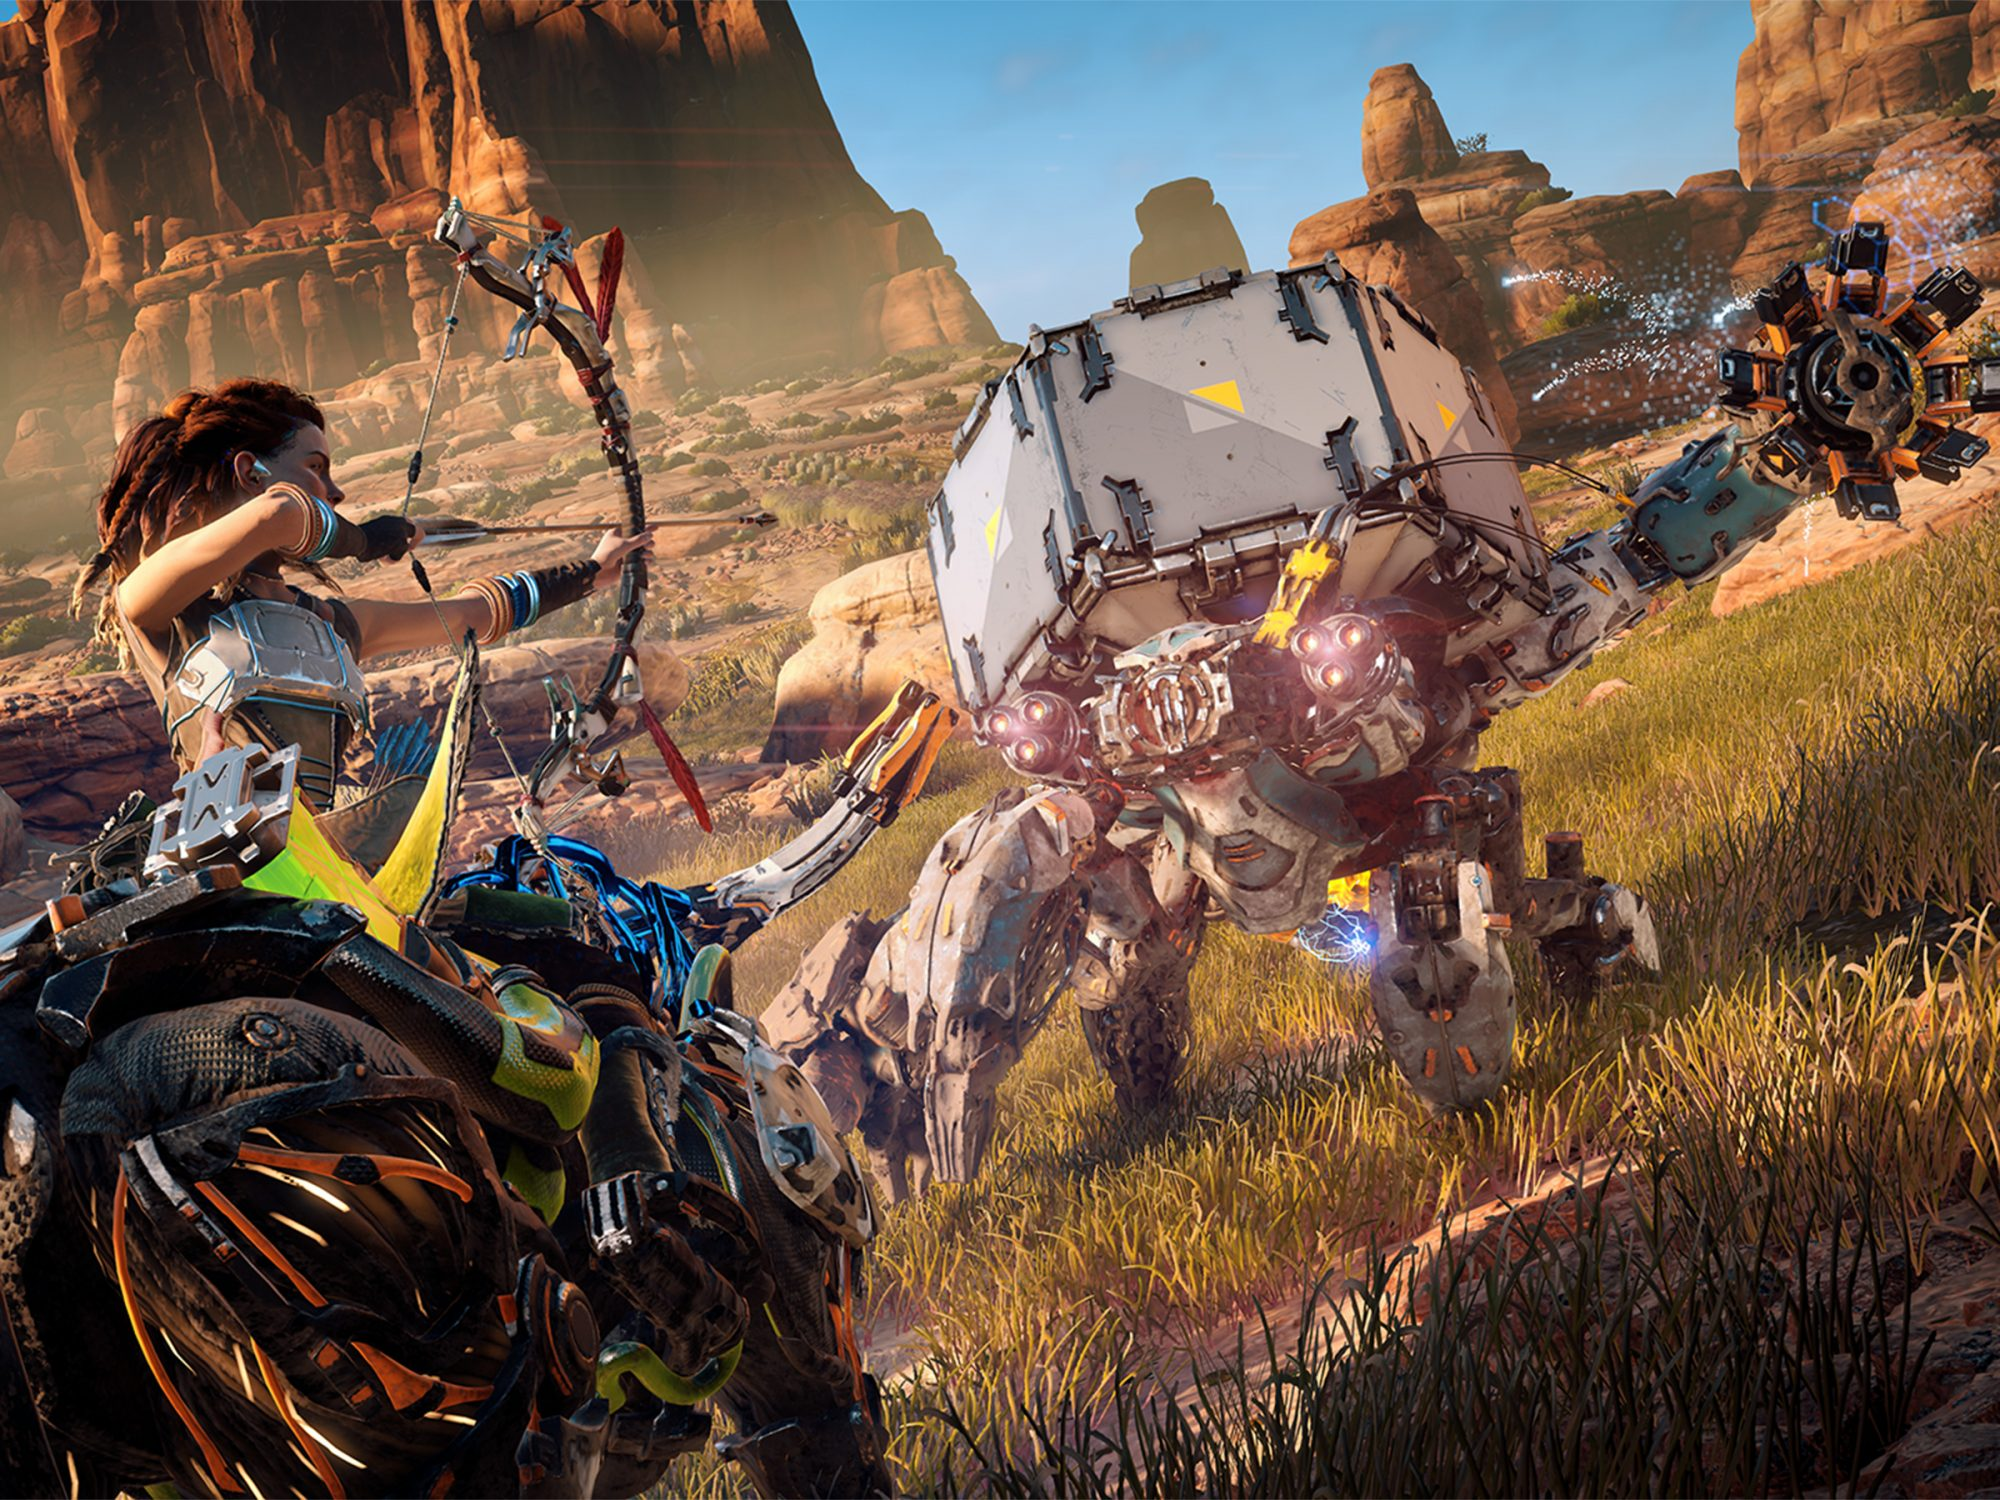 3. Horizon Zero Dawn (PS4; February 28)